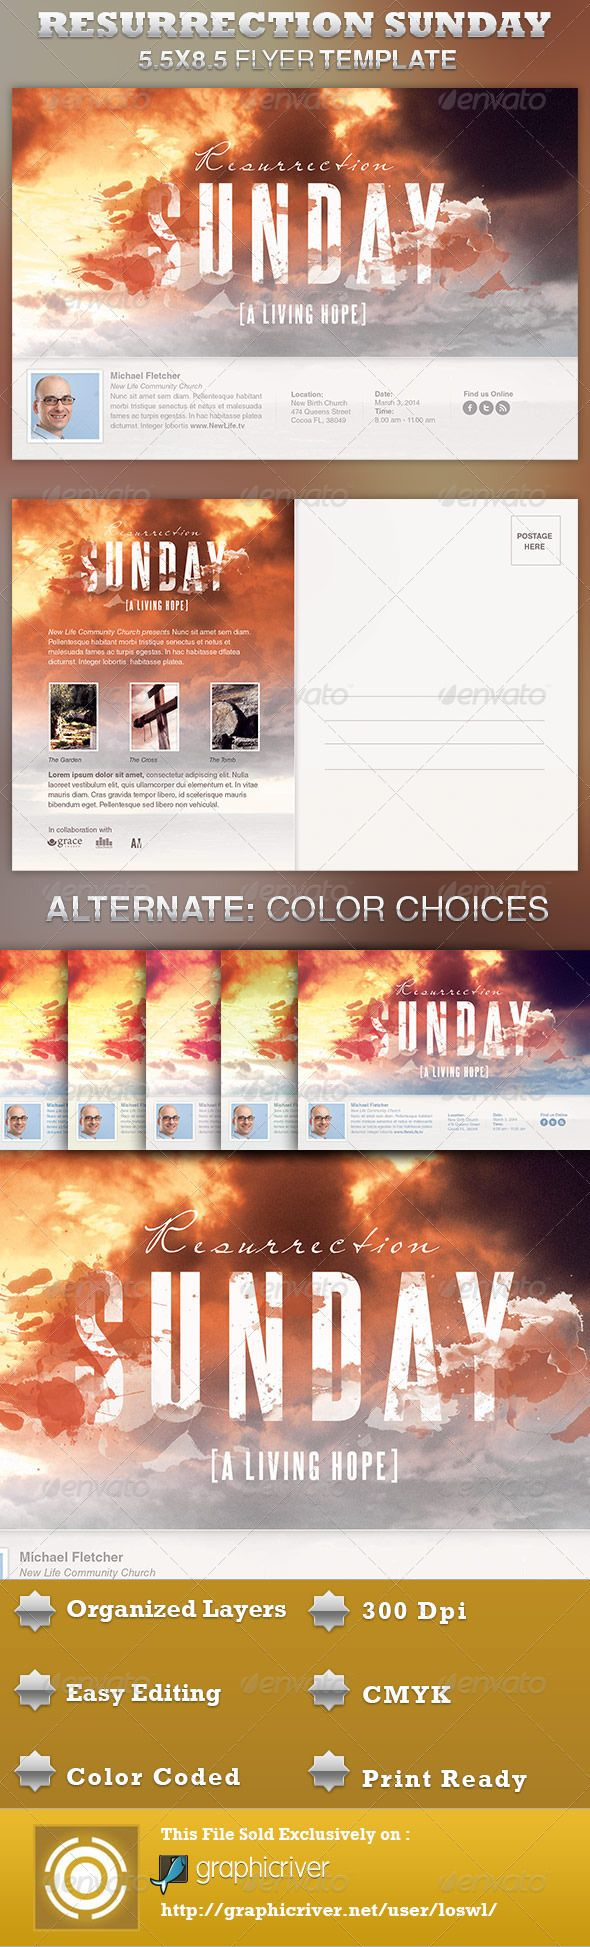 The Resurrection Sunday Church Flyer Template is great for any Easter and/or Resurrection Sunday event. In this package you'll find 1 Photoshop file. All text and graphics in the file are editable, color coded and simple to edit. The file also contain 6 one-click color options, but endless colors are possible. $6.00